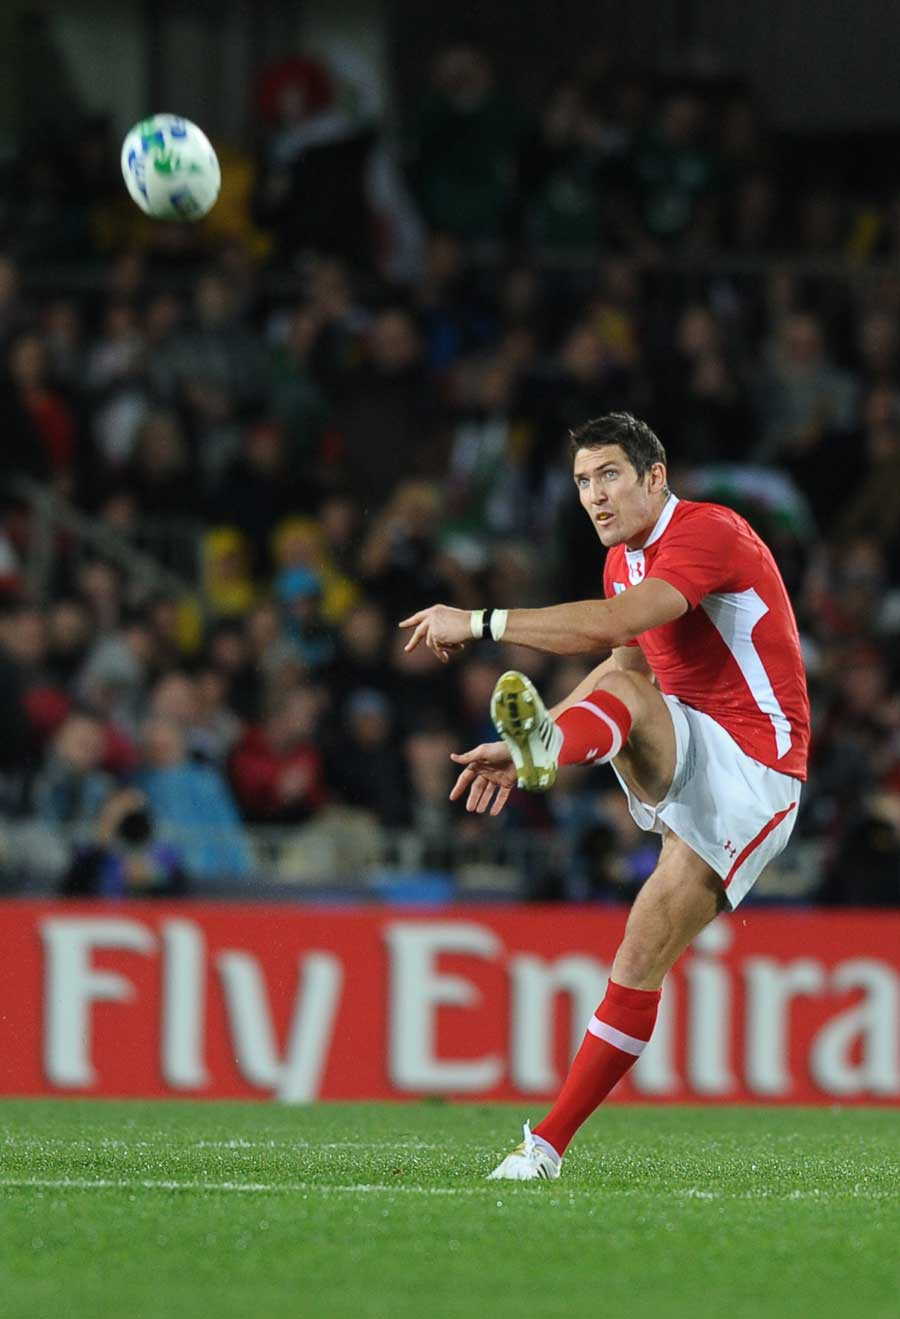 Wales fly-half James Hook lands an early penalty